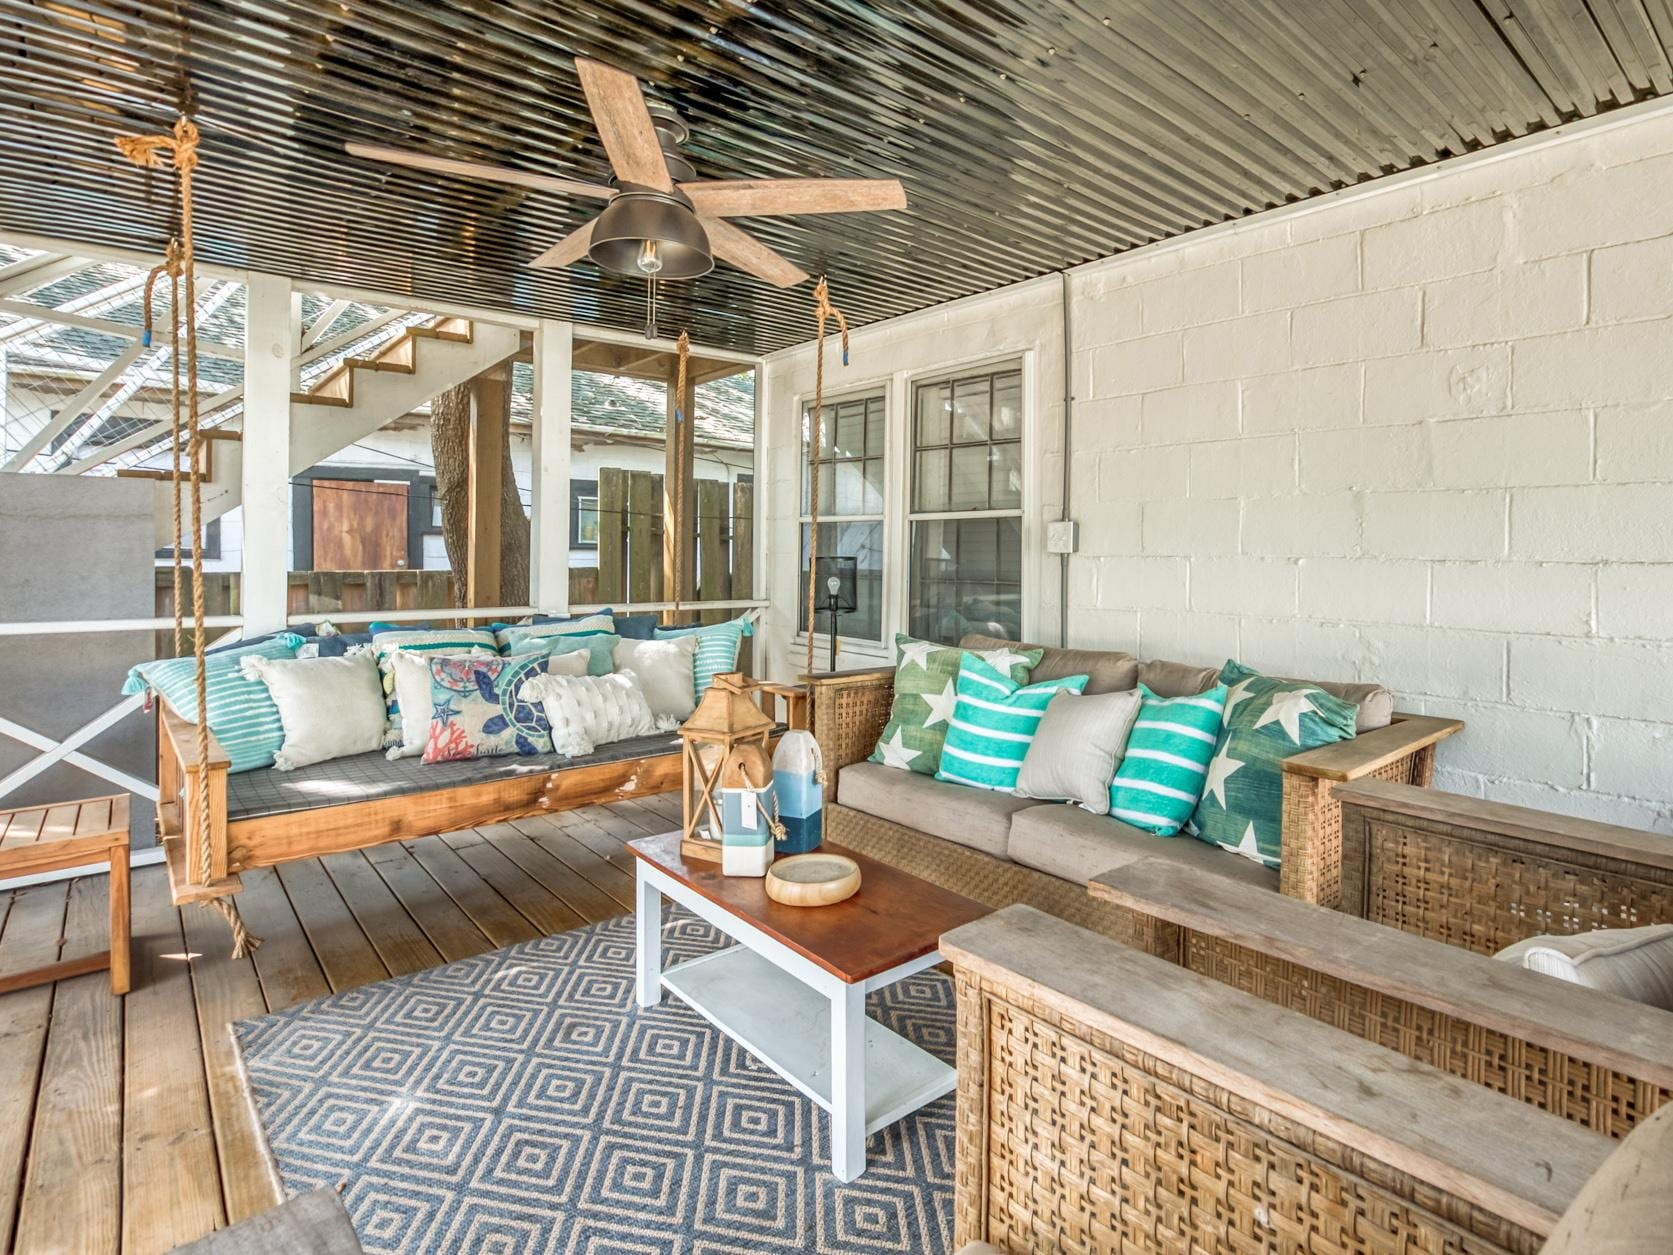 Beautiful Tybee Island Home with Great Outdoor Space and Firepit